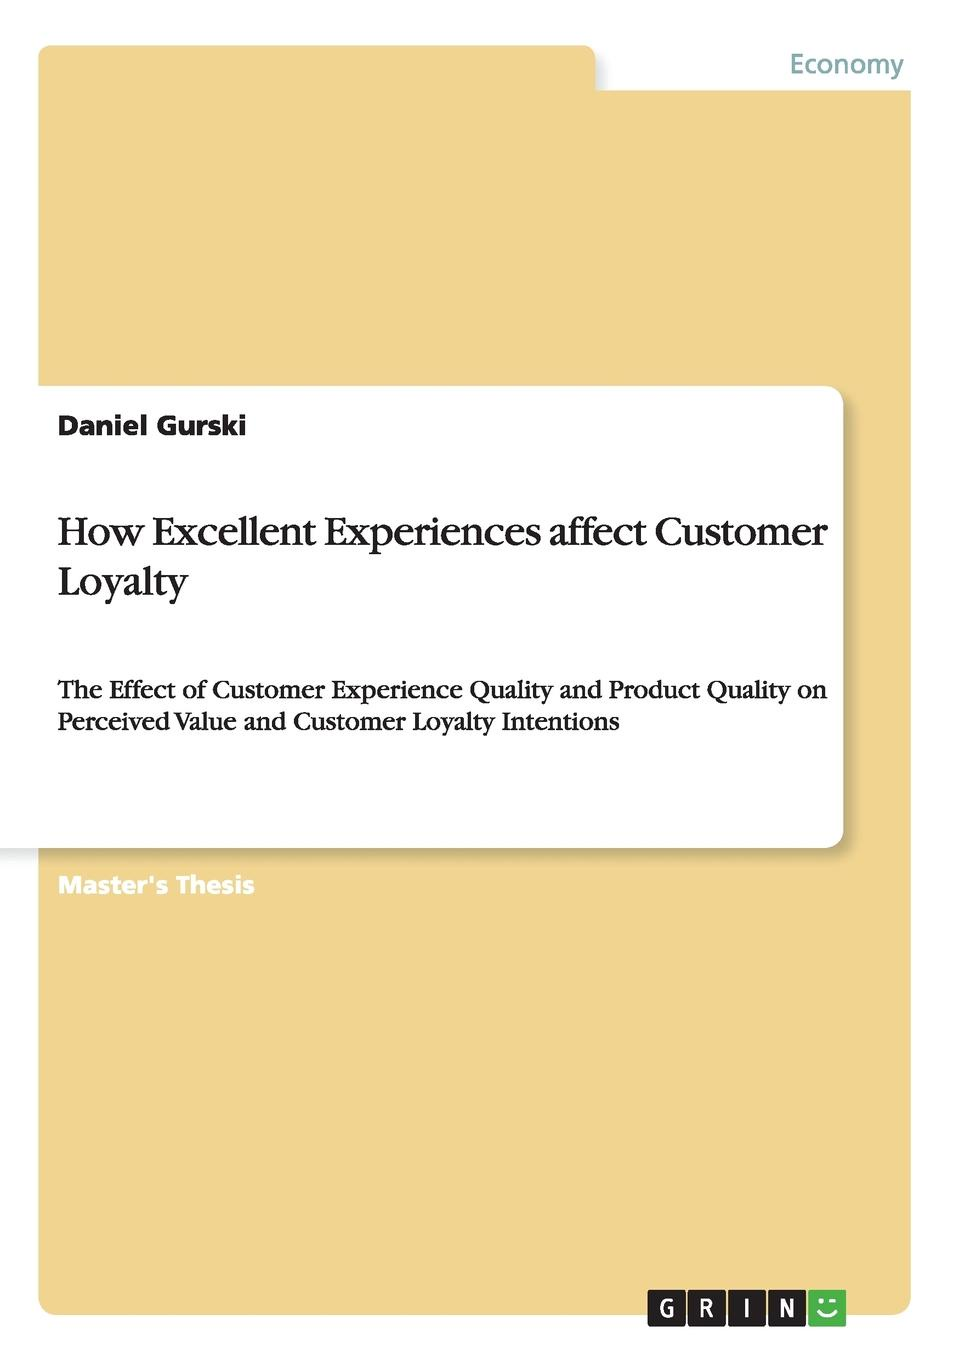 Daniel Gurski How Excellent Experiences affect Customer Loyalty